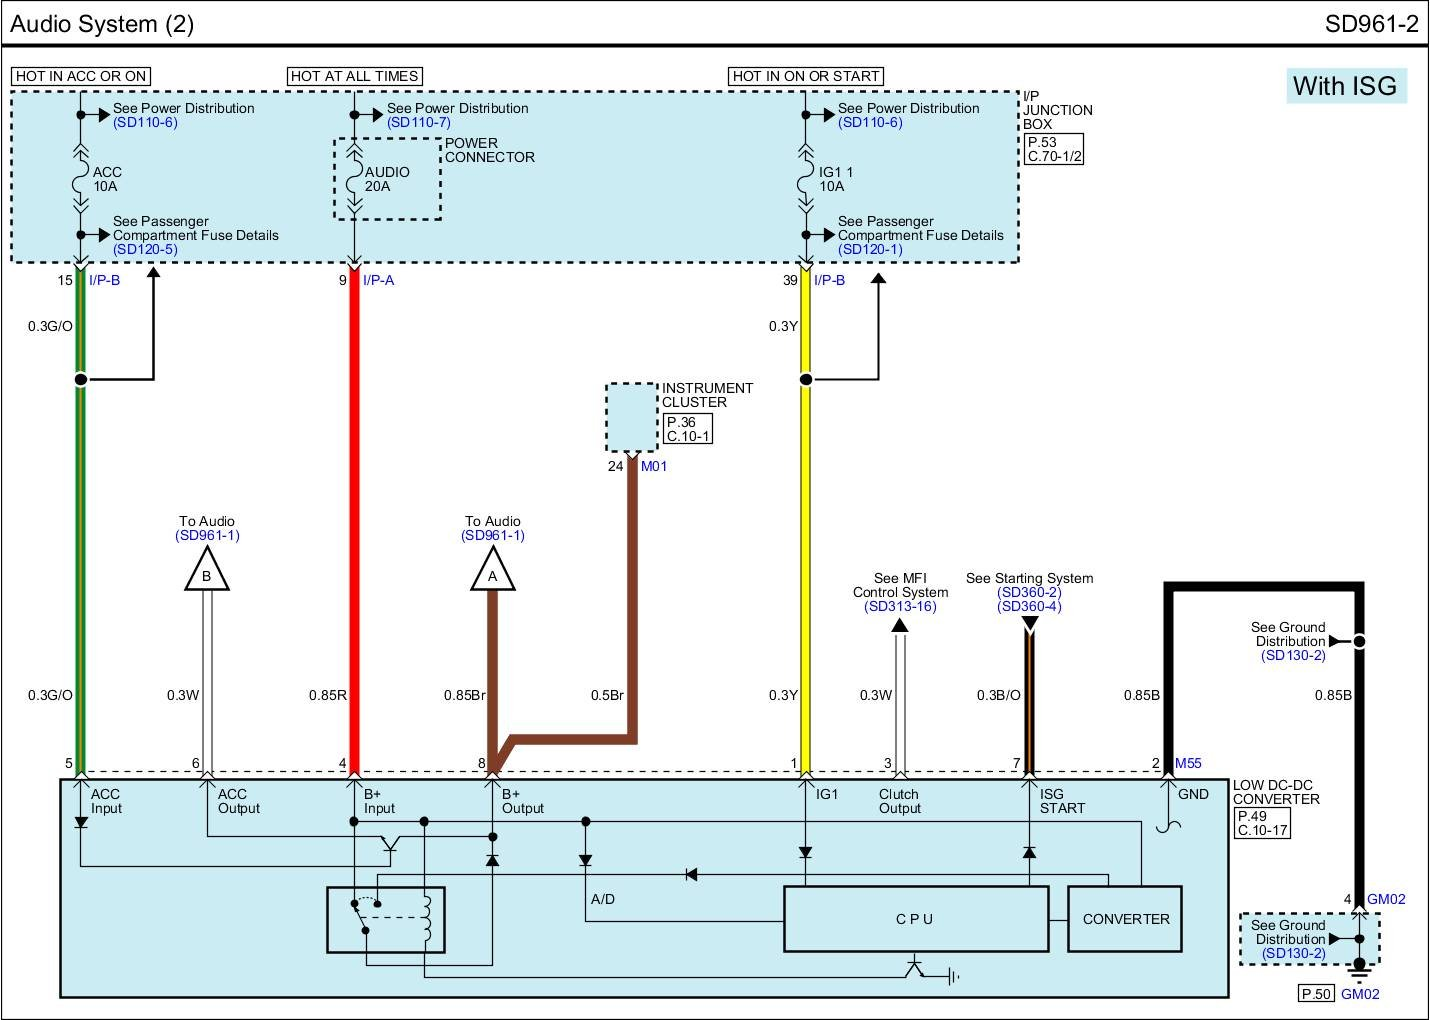 wiring diagram for 2013 kia rio sx with navigation page 2 kia 03 Kia Rio Wiring Diagram wiring diagram for 2013 kia rio sx with navigation page 2 kia forum 04 kia rio wiring diagram